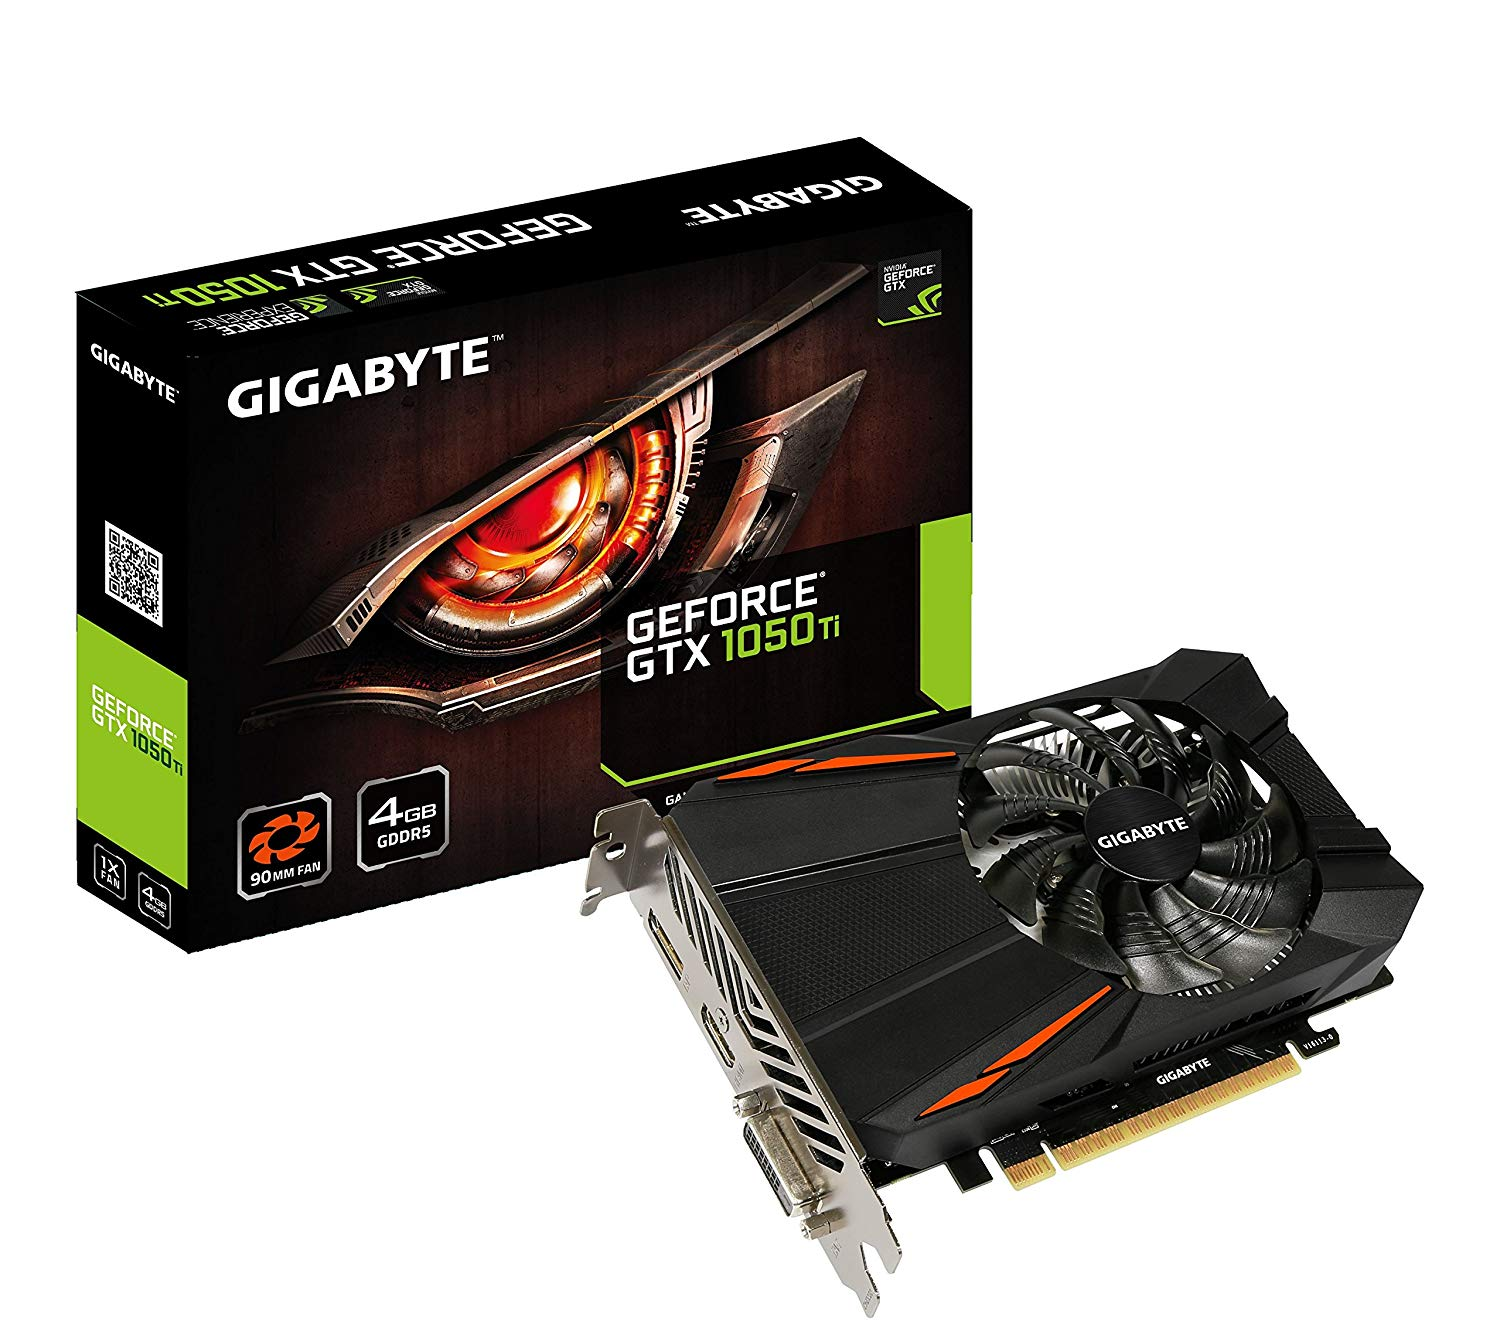 Gigabyte Geforce GTX 1050 Ti 4GB GDDR5 PCI-E Graphics Card